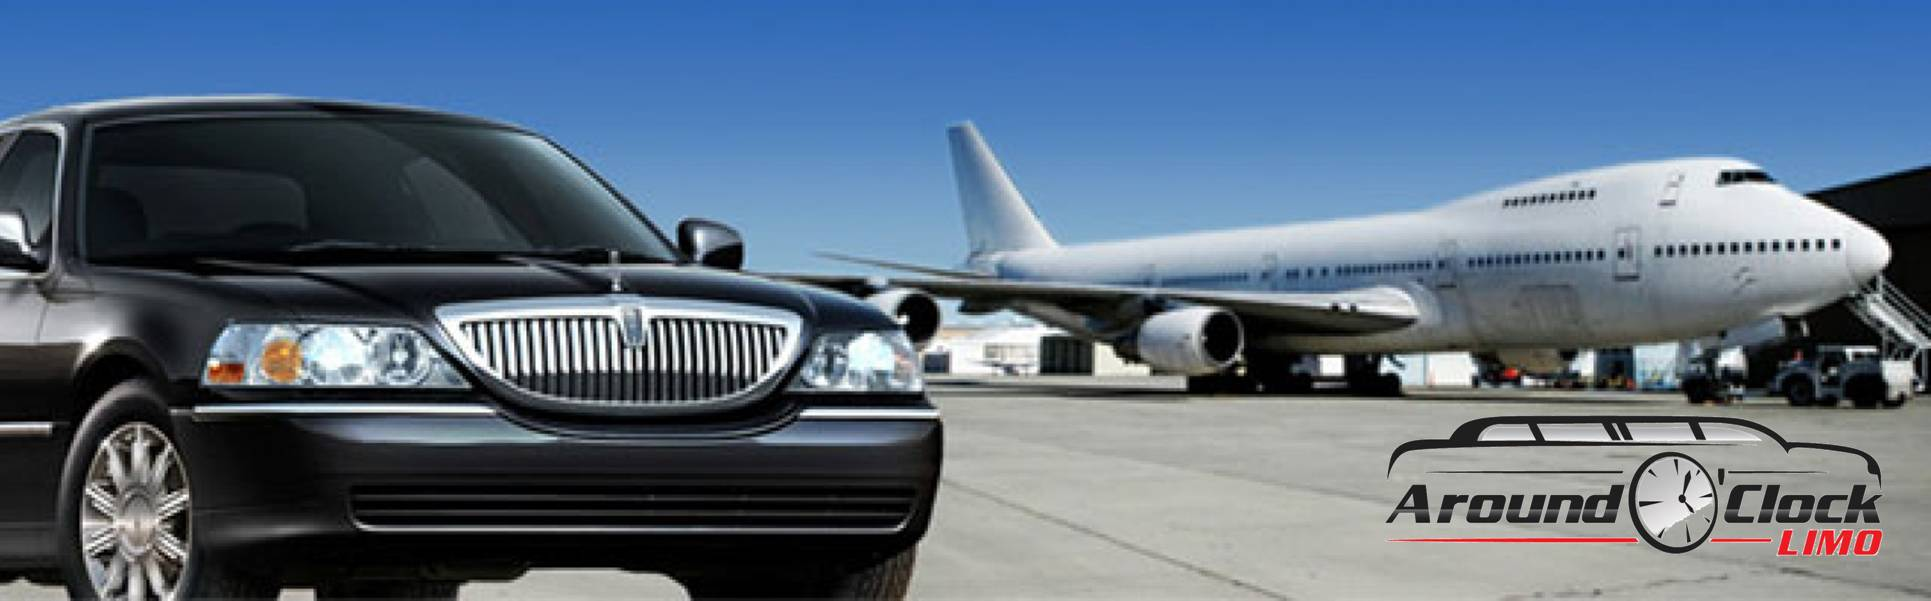 Los Angeles Airport Limo Service LAX limousine car ride transfer